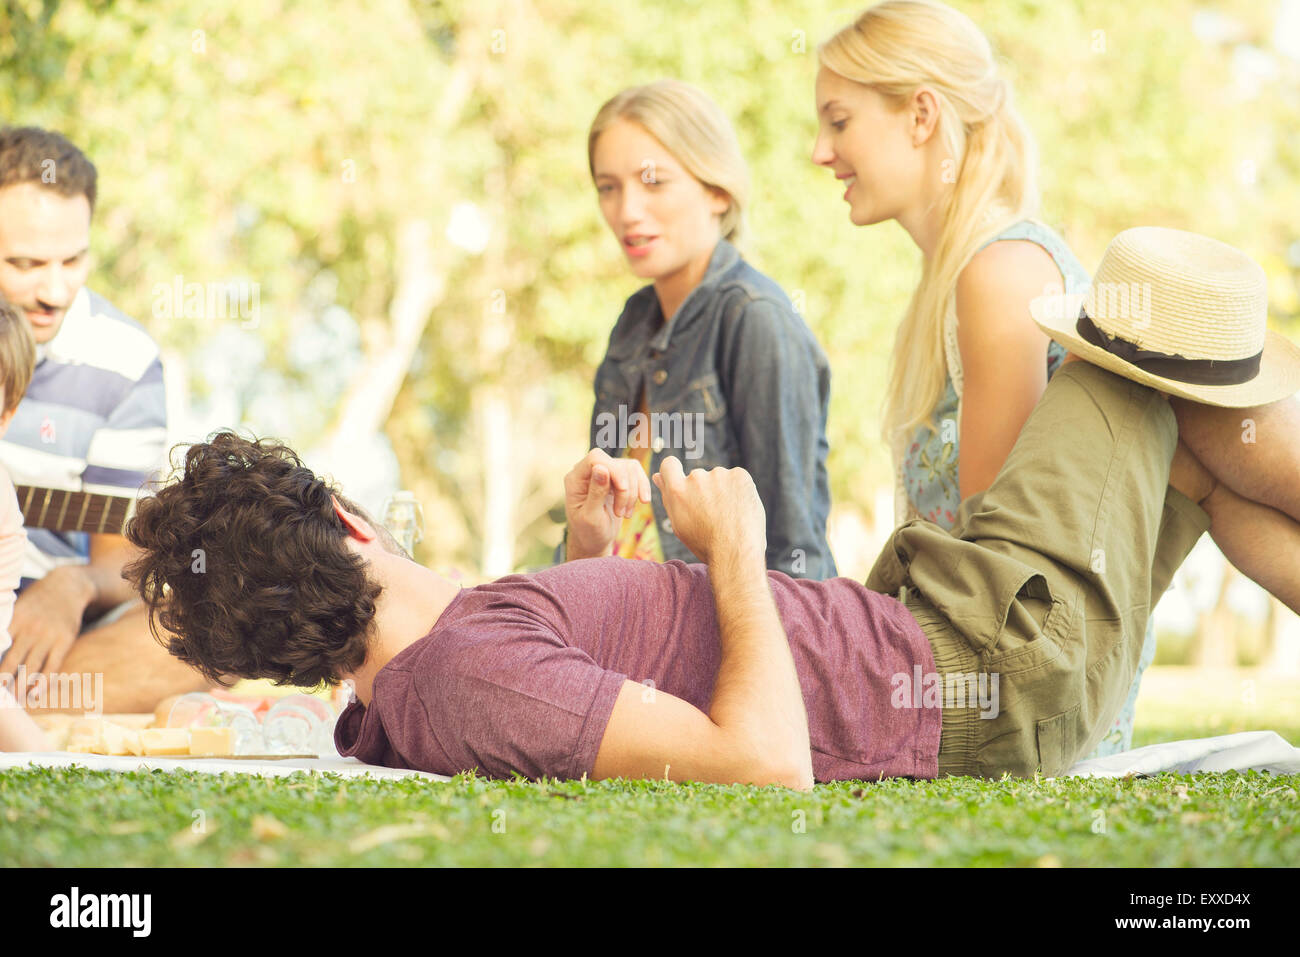 Man at picnic with friends - Stock Image